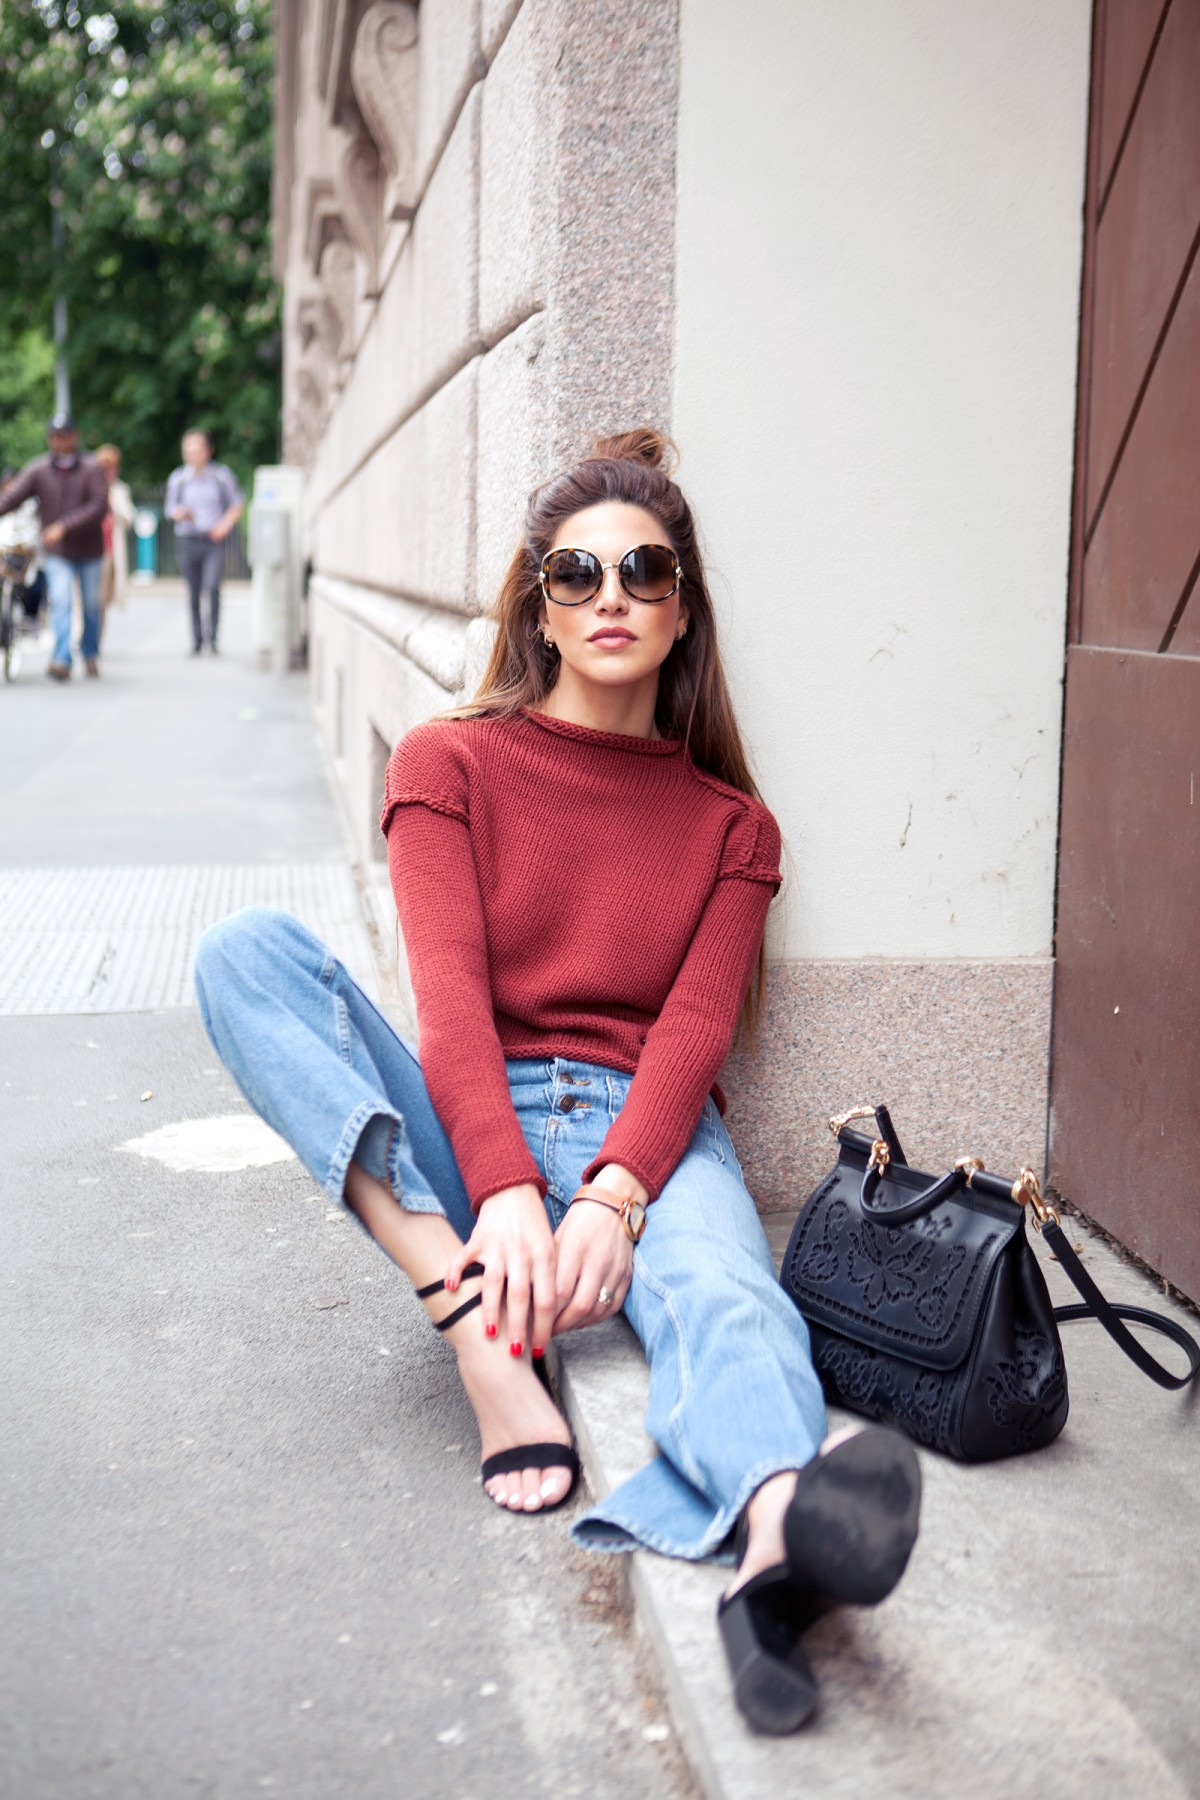 turtleneck outfit inspiration fashion blogger Negin Mirsalehi